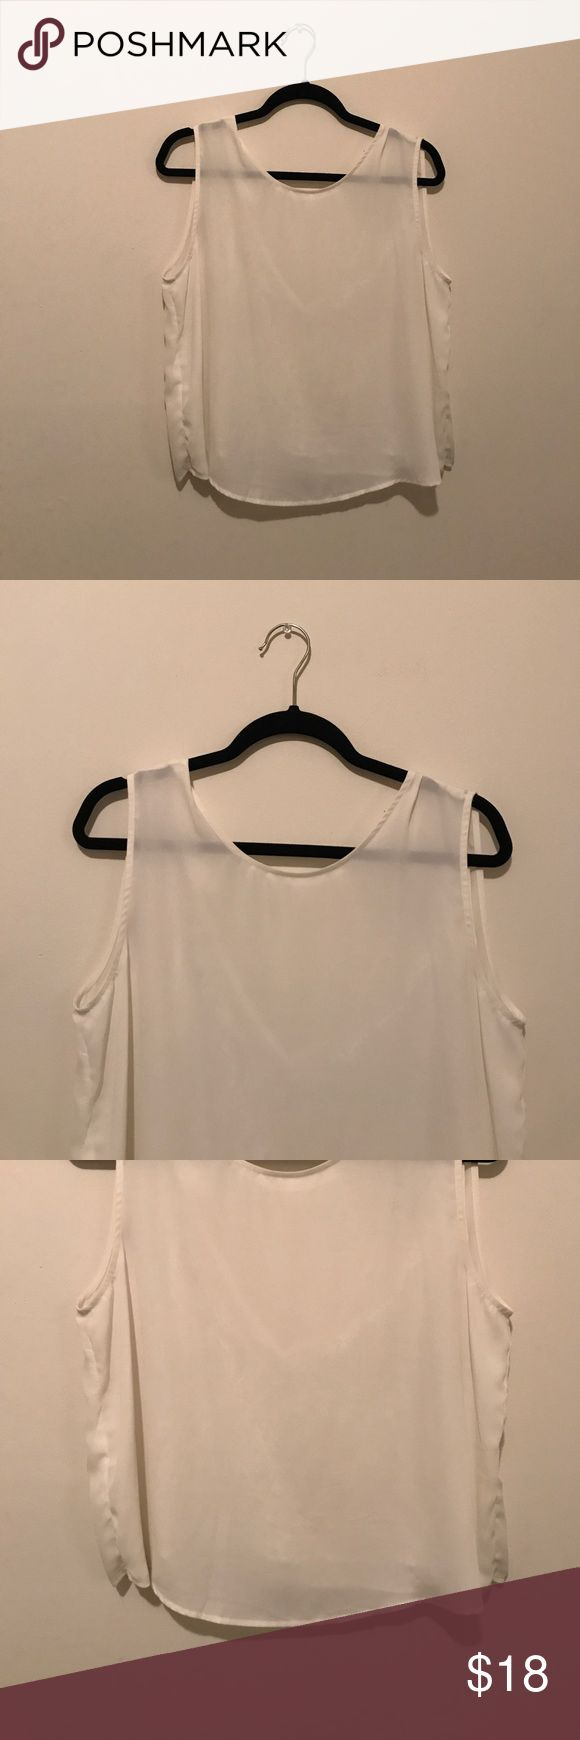 MNG by Mango Suit Sleeveless Blouse White sleeveless Blouse that has only been worn once and goes great underneath blazers. Also great for summer because it is light weight. Has a v cut in the back with delicate lace. In excellent condition and from a smoke free home. Mango Tops Blouses